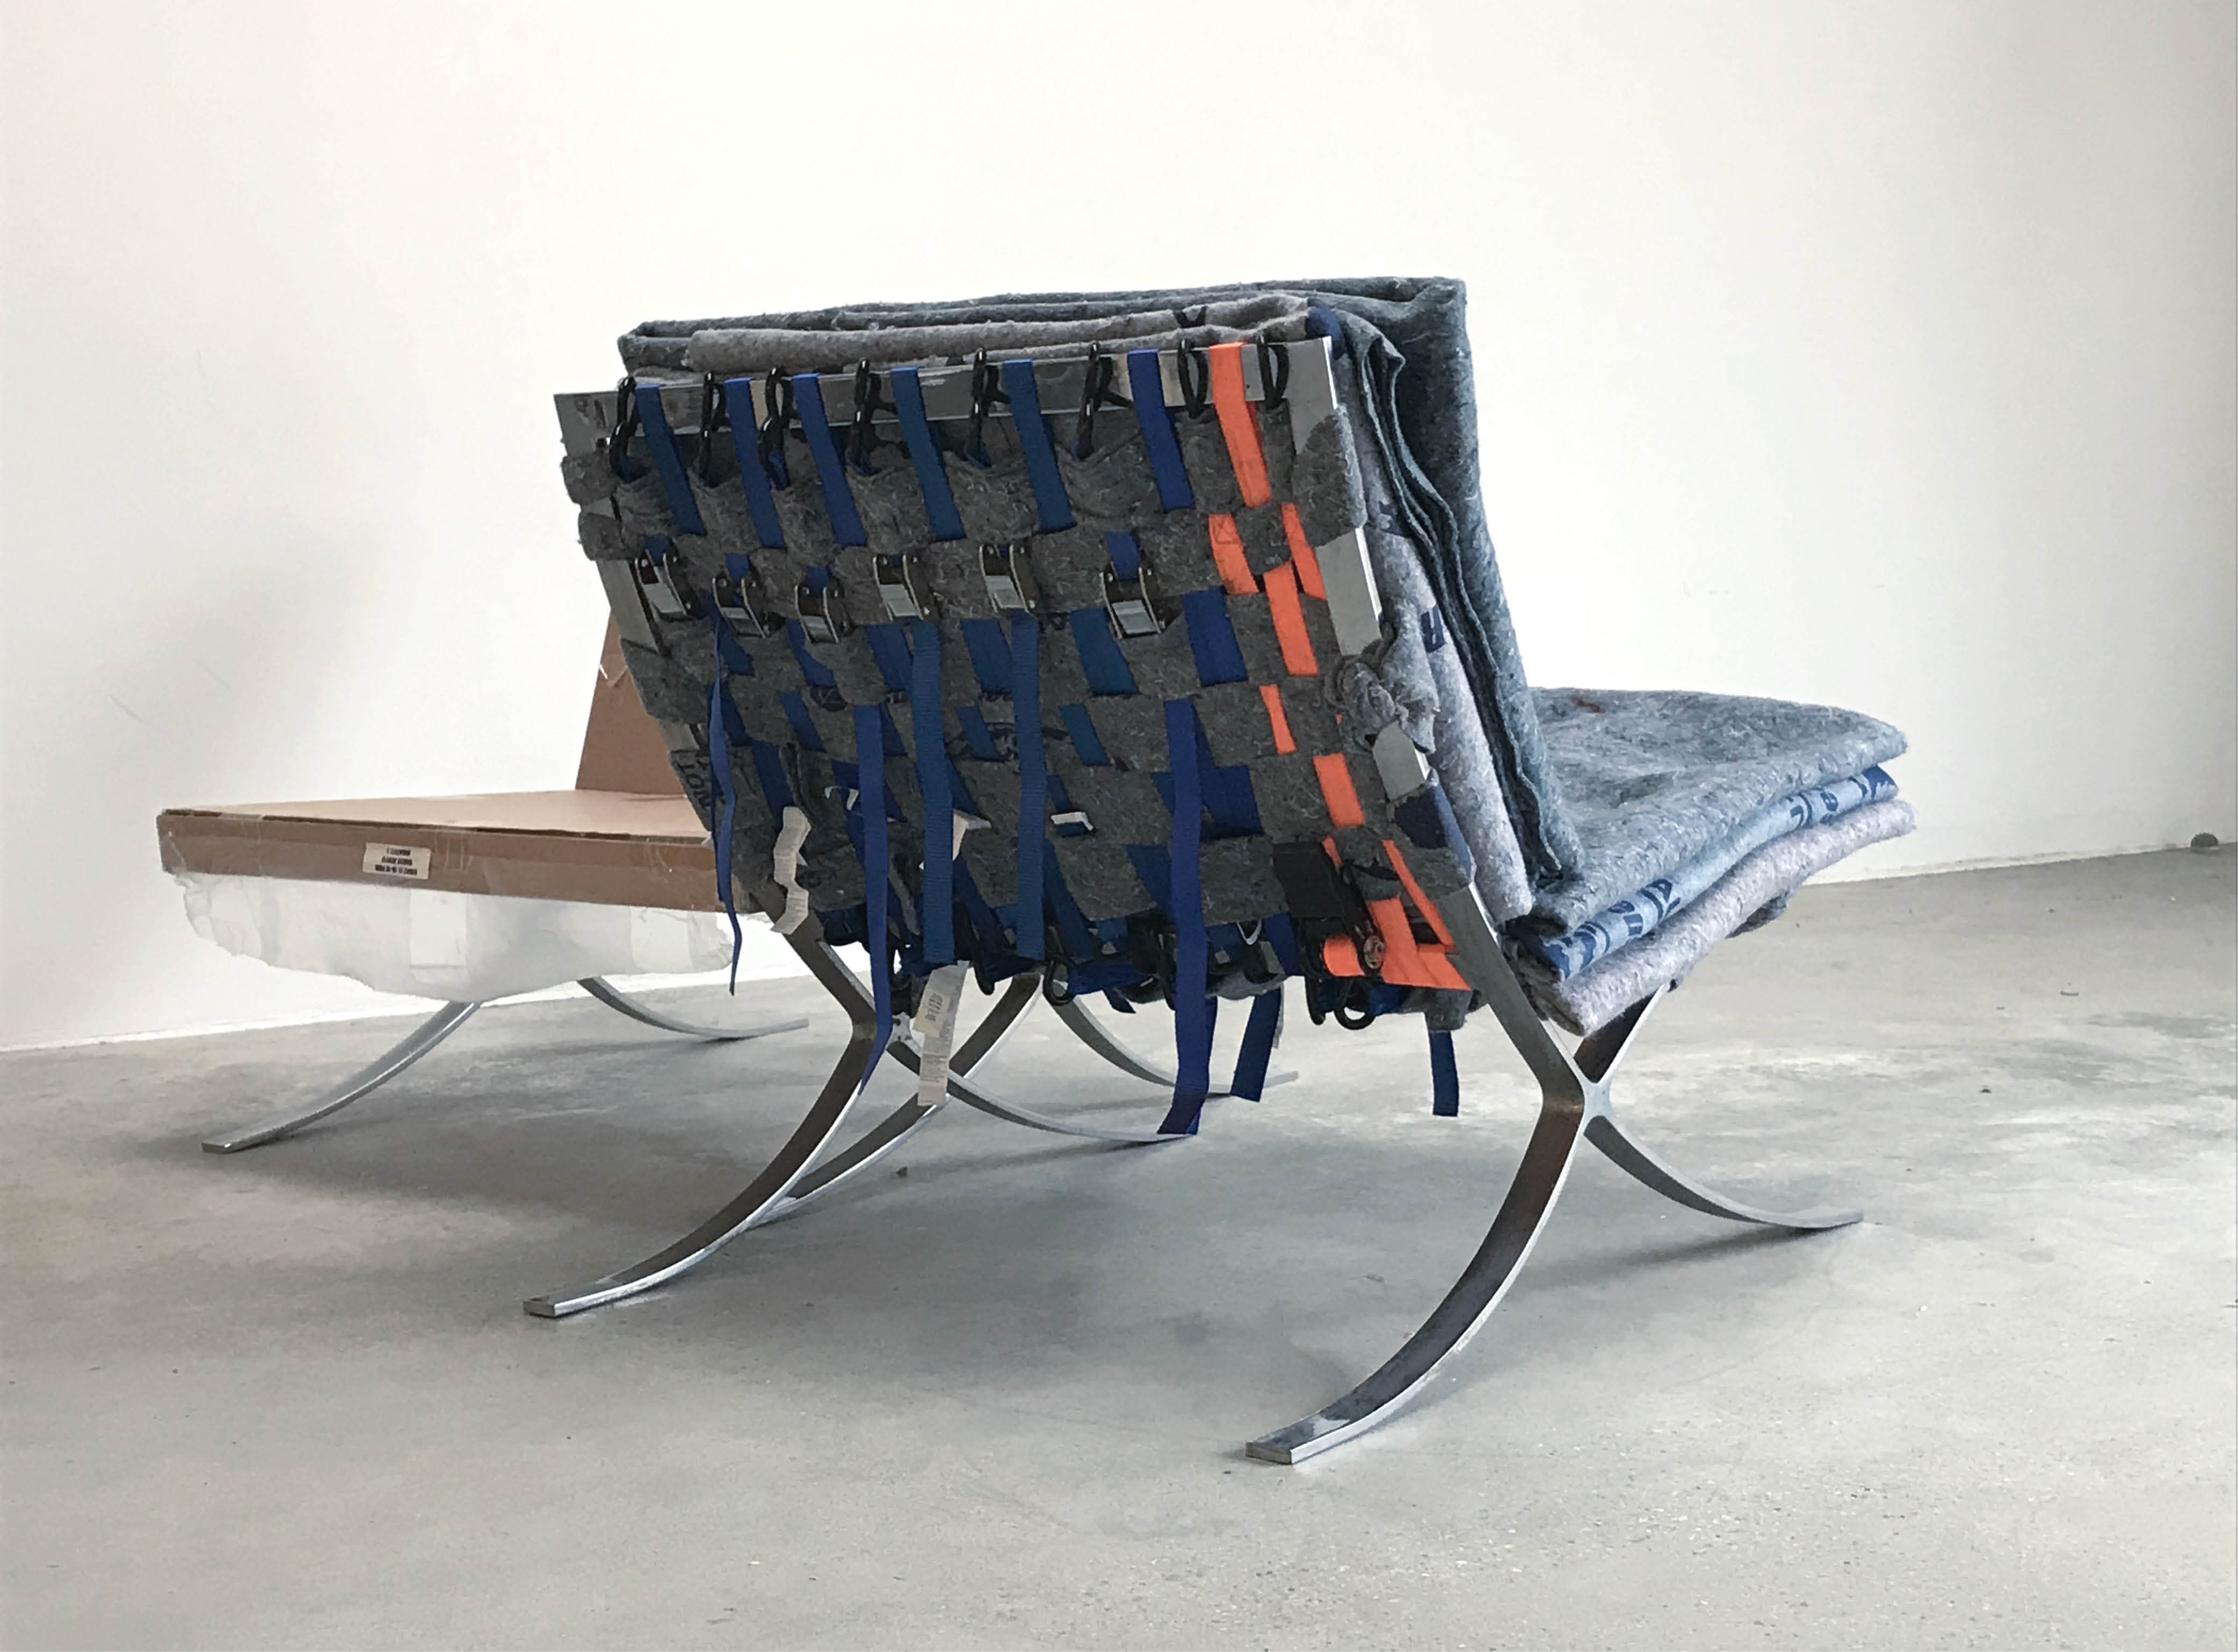 Courting Chairs by Joseph Di Matteo and Anna Hermann